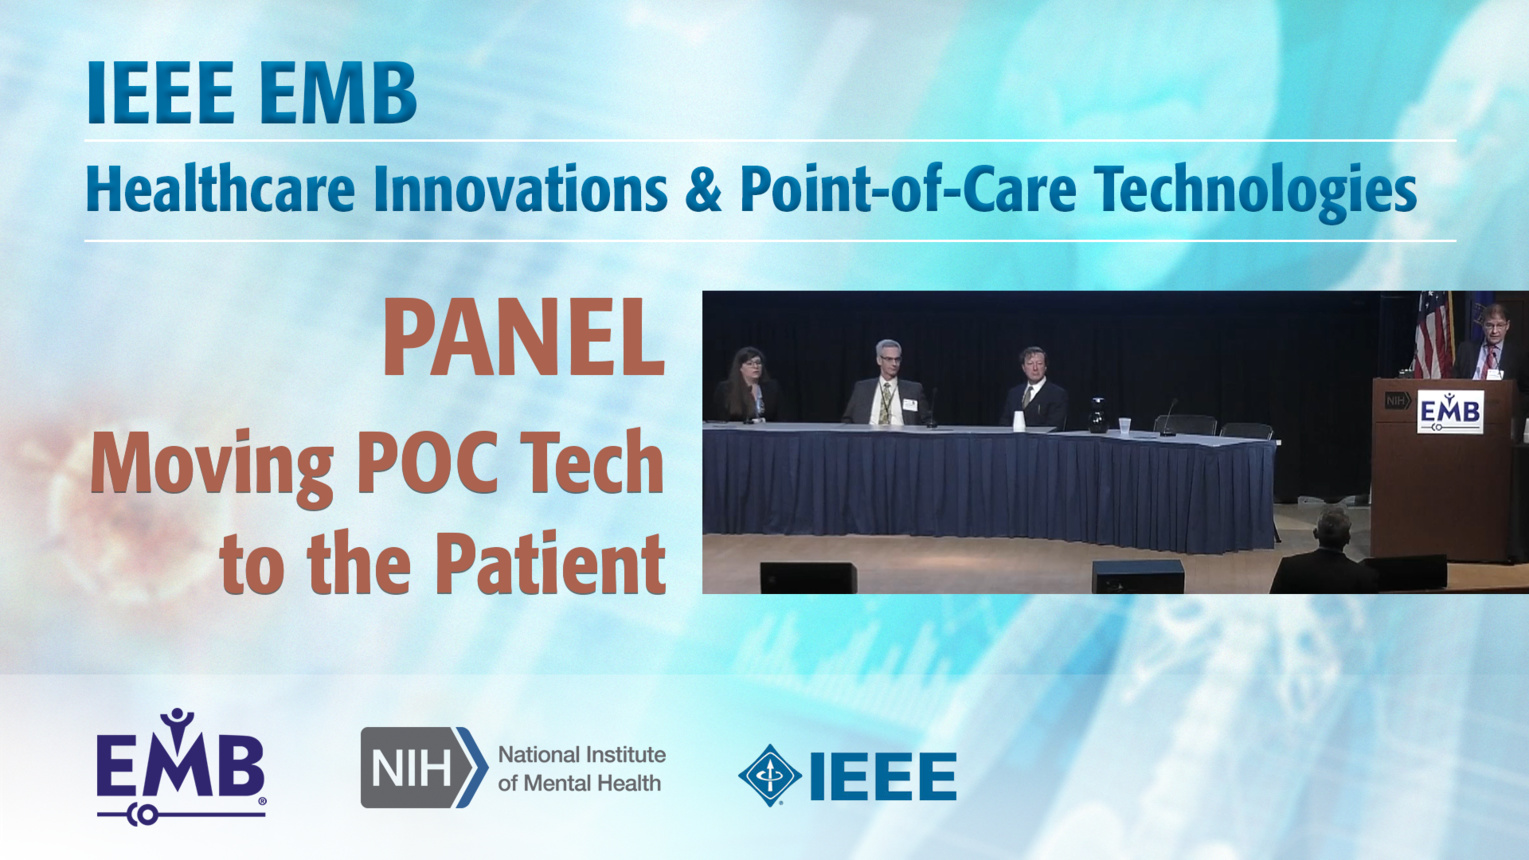 Panel: Moving POC Technologies to the Patient - IEEE EMBS at NIH, 2019